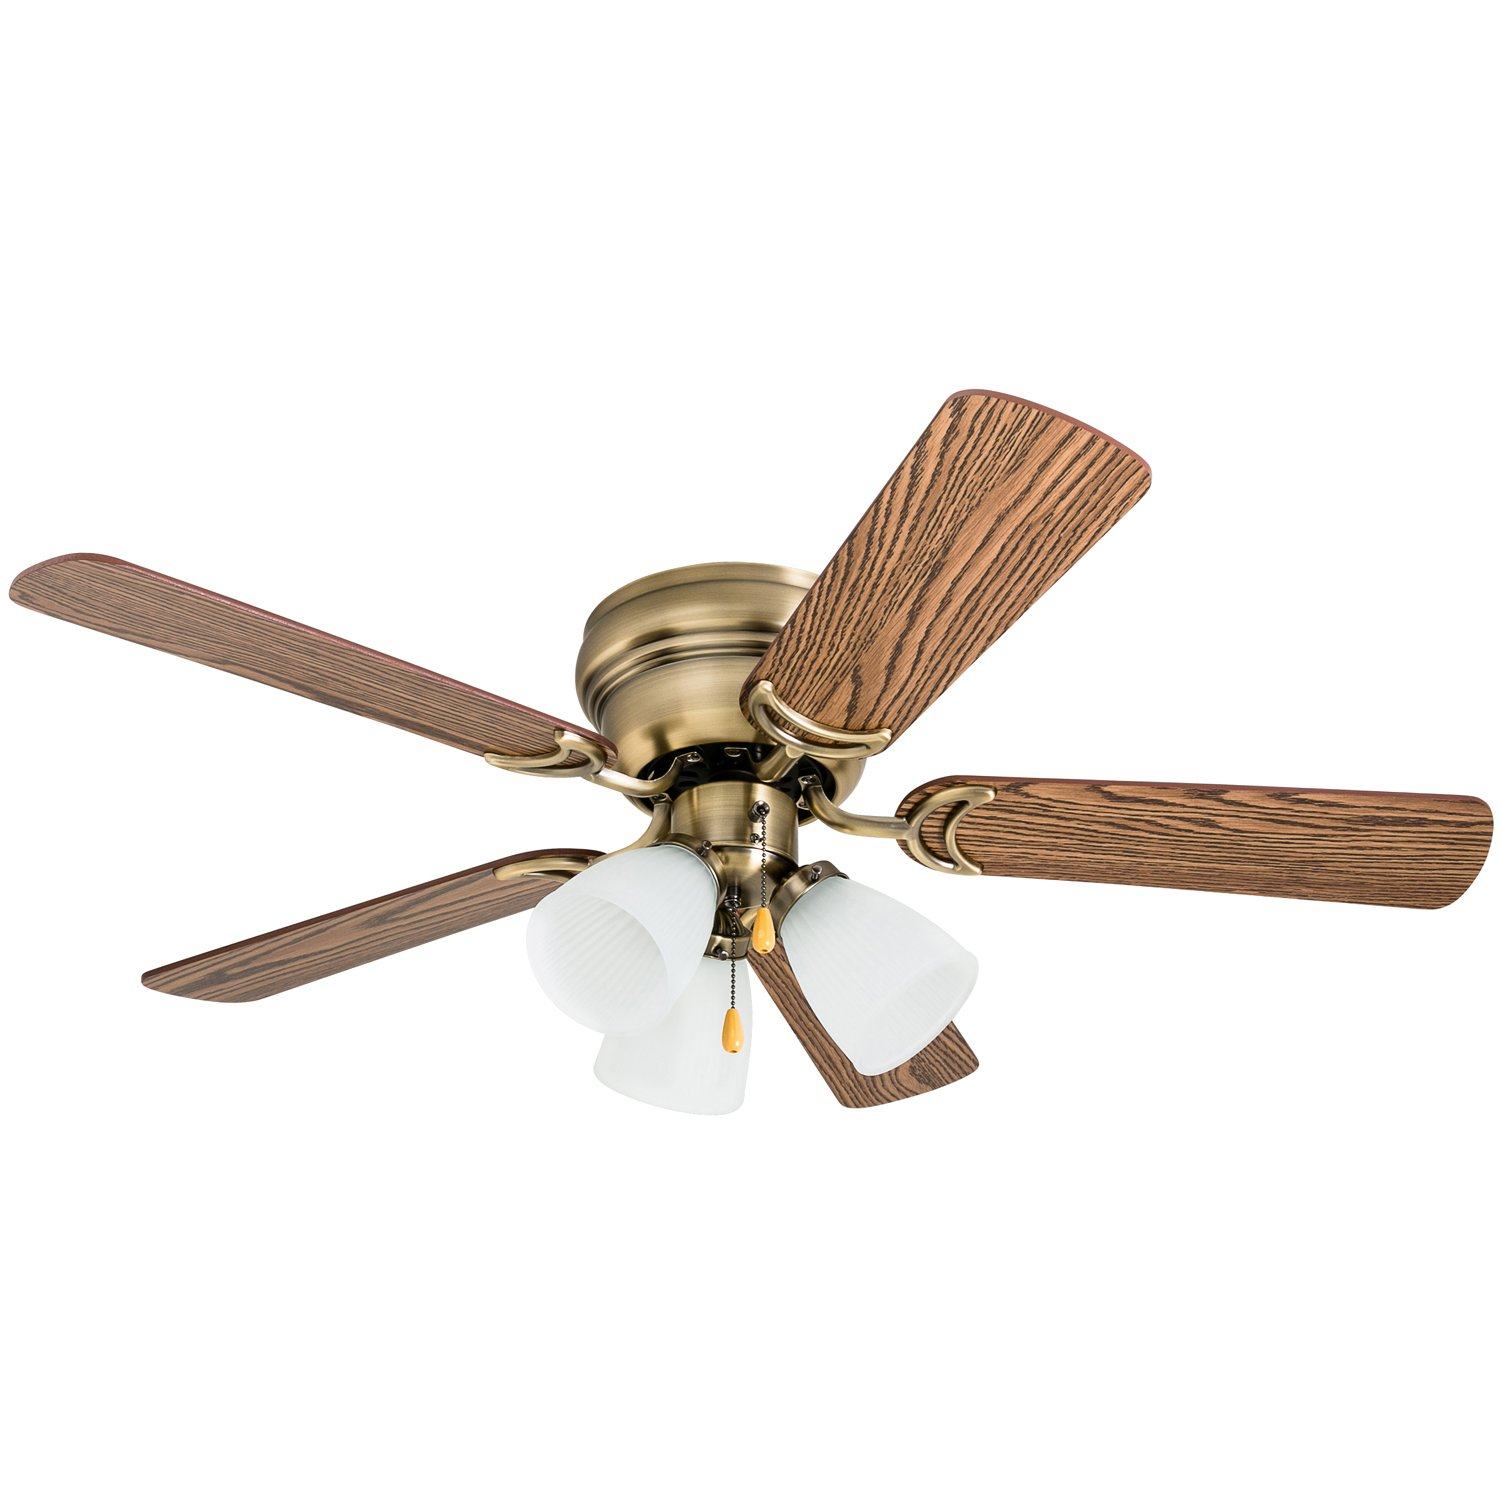 Prominence Home 50861 Whitley Hugger Ceiling Fan, 42'', Antique Brass by Prominence Home